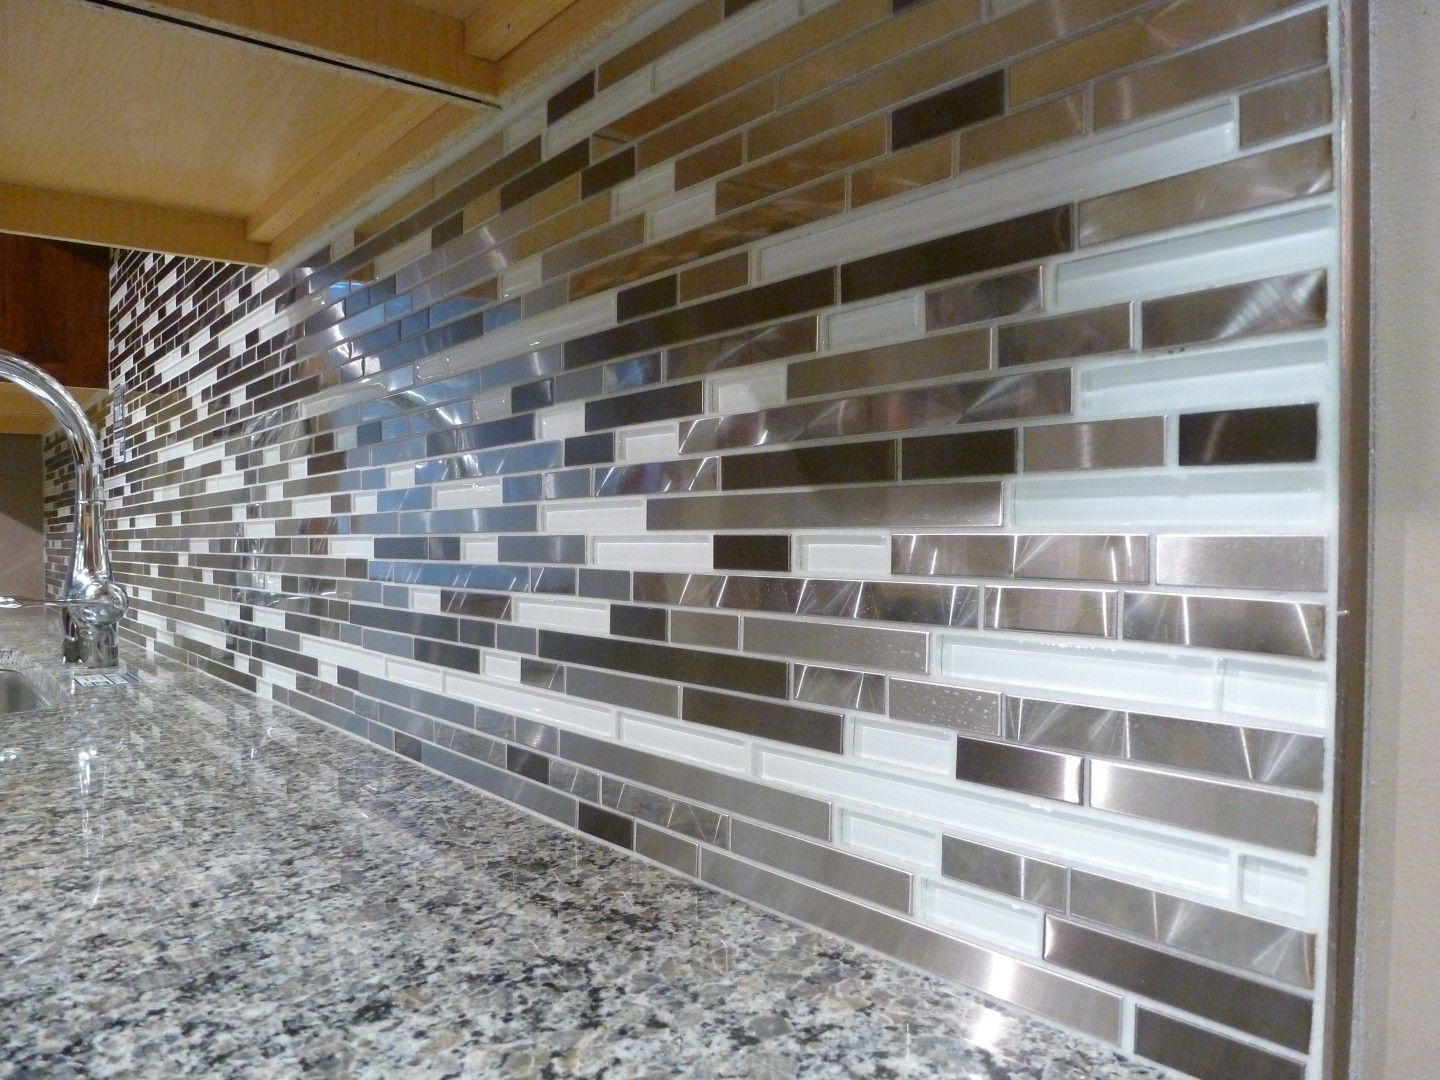 Superb Glass Mosaic Tiles For Your Backsplash Awesome Ideas